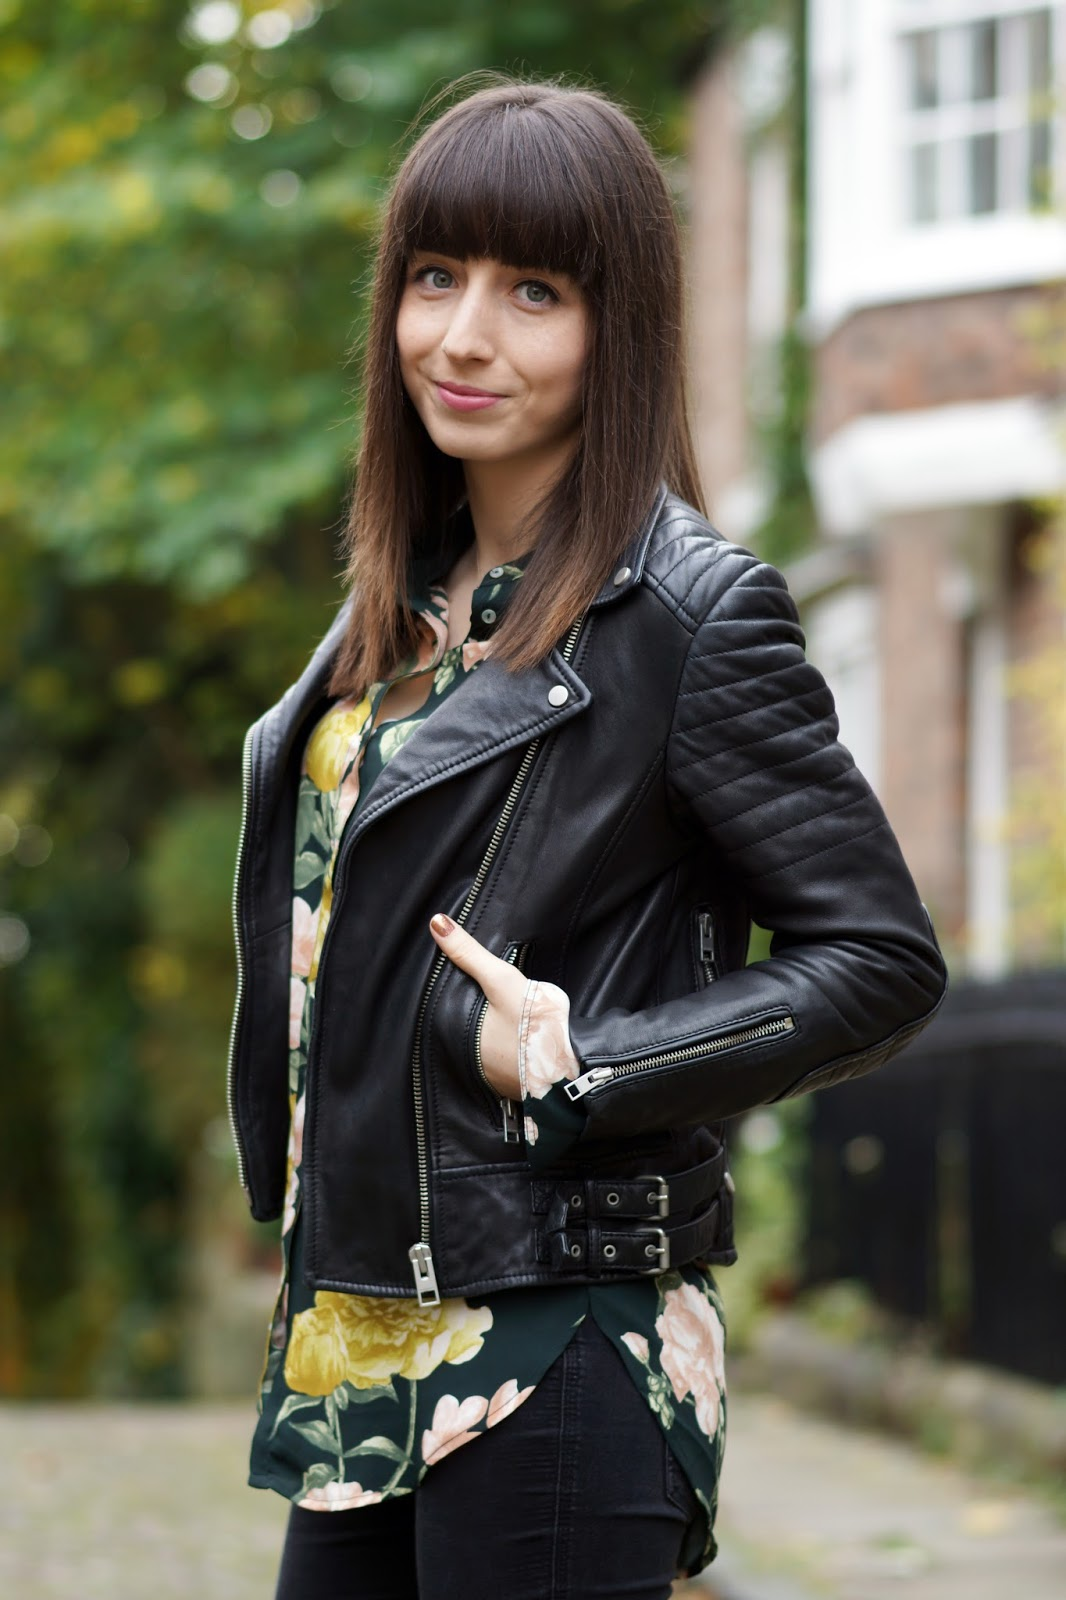 Hello Freckles All Saints Leather Biker Jacket #BikerPortraits Outfit Personal Style